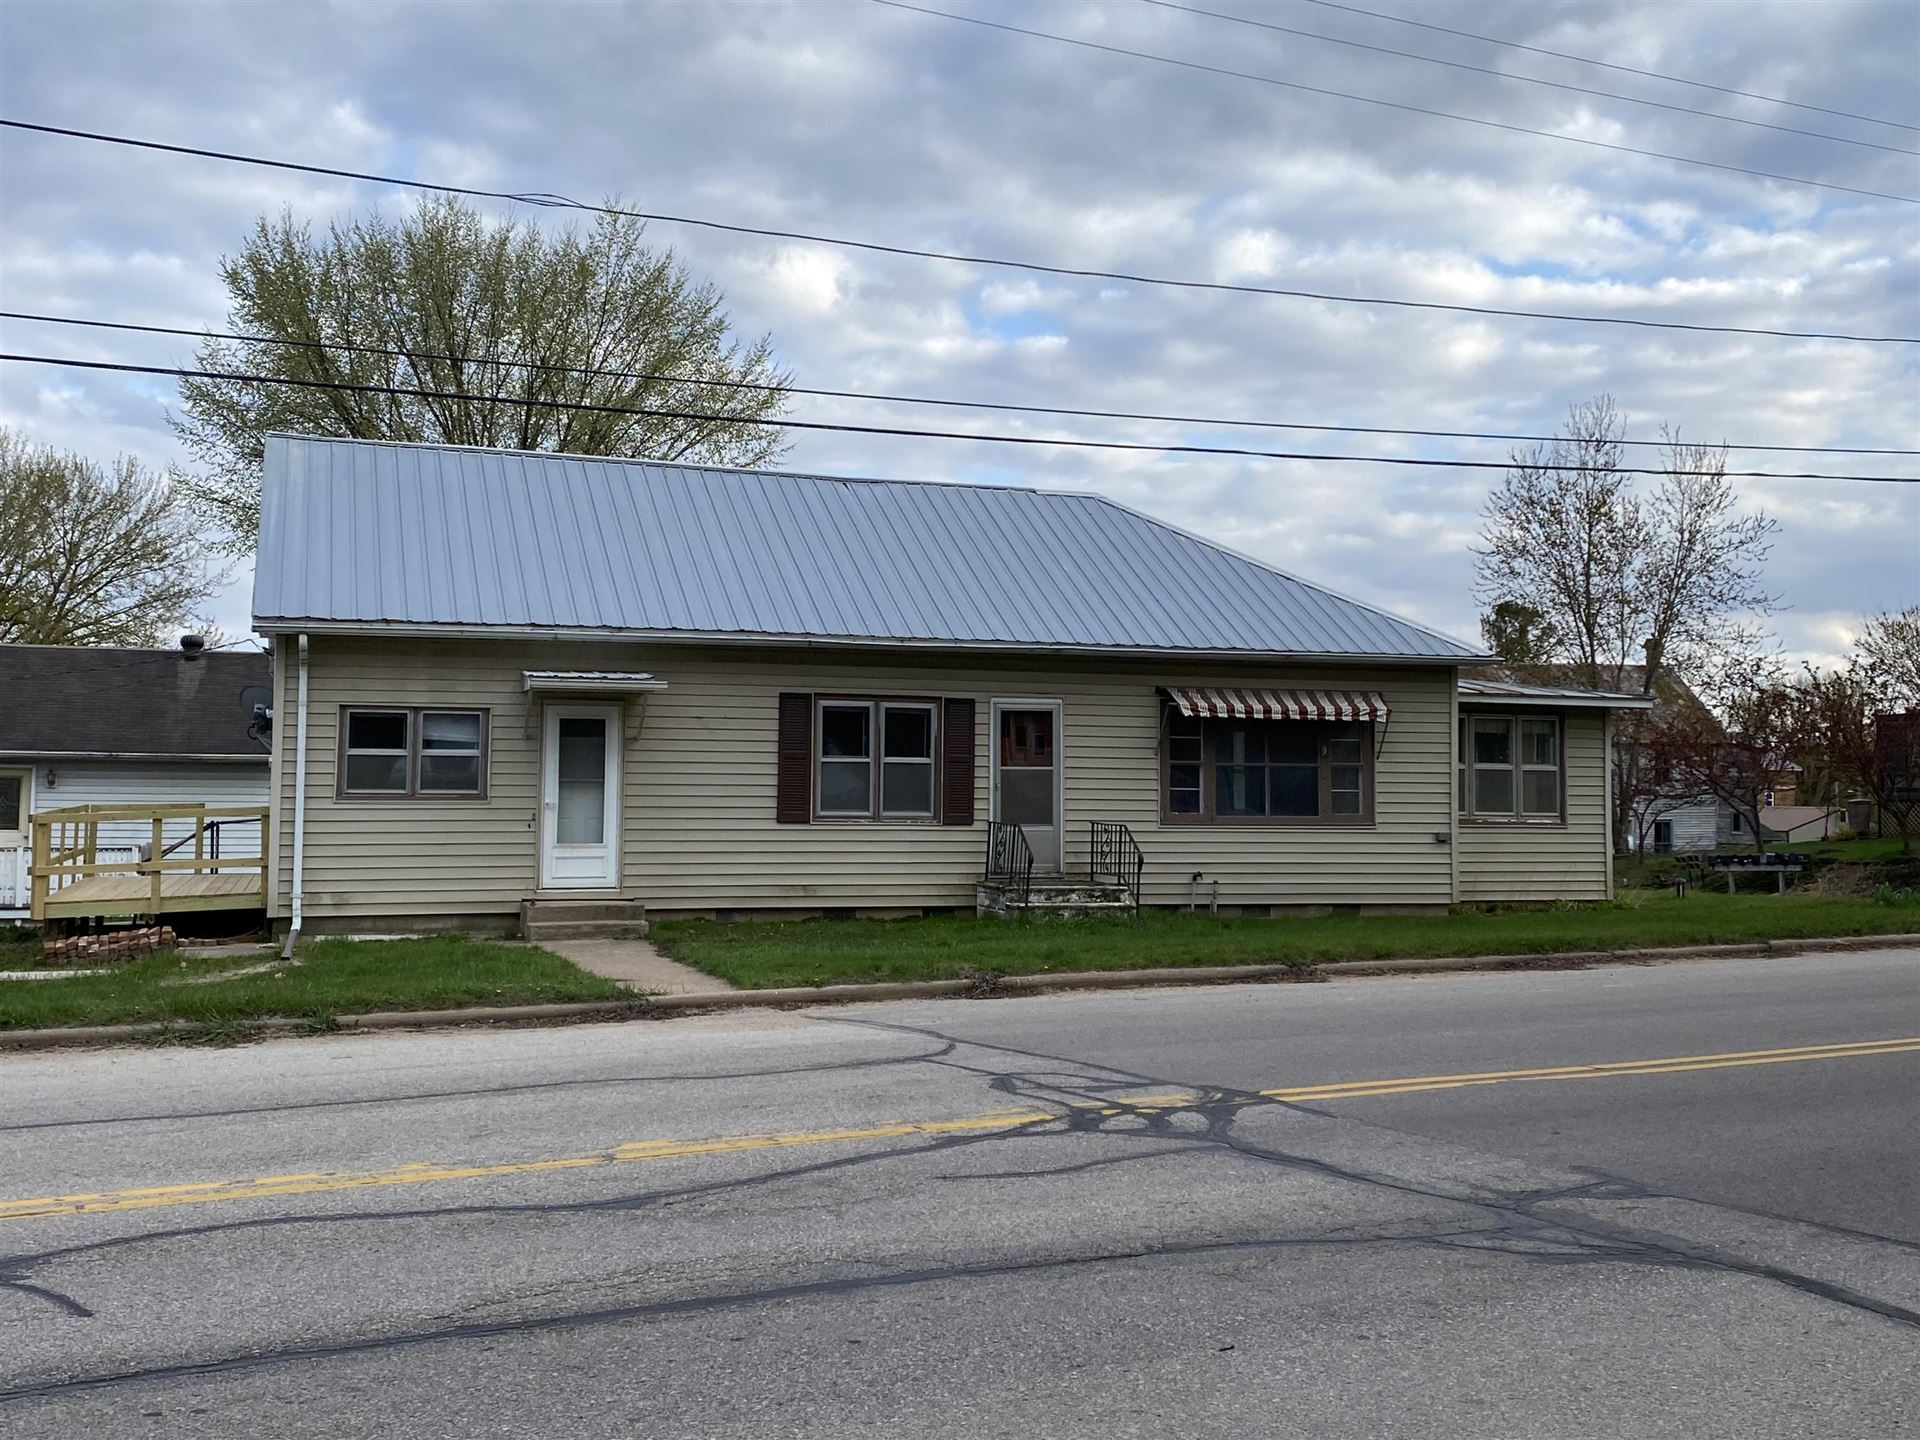 W16095 State Highway 54, Melrose, WI 54642 - MLS#: 1727432